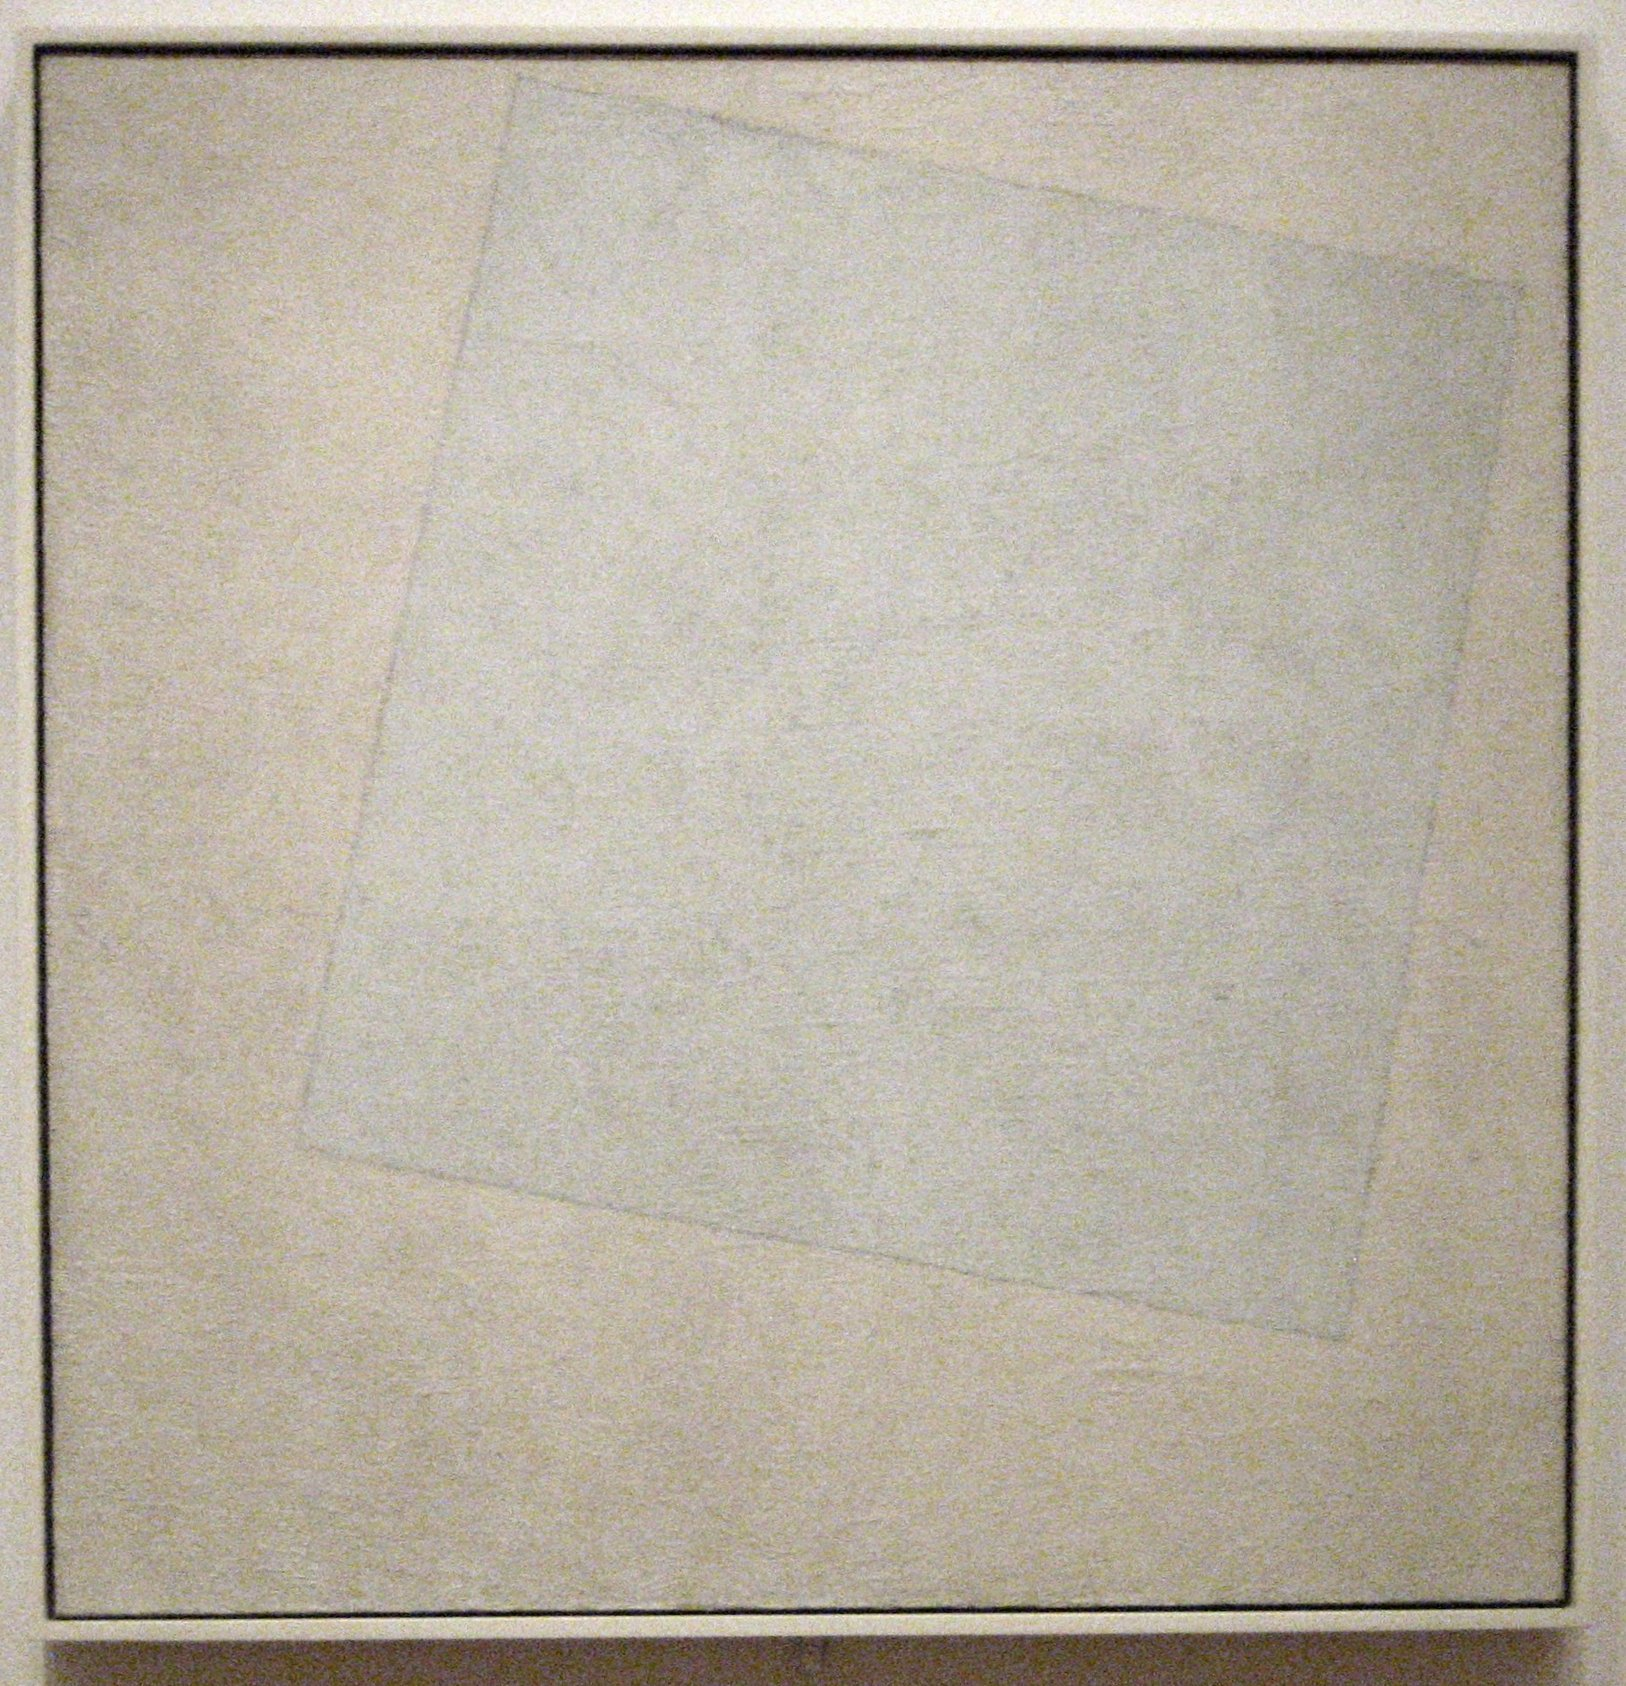 Kazimir_Malevich_-_'Suprematist_Composition-_White_on_White',_oil_on_canvas,_1918,_Museum_of_Modern_Art.jpg